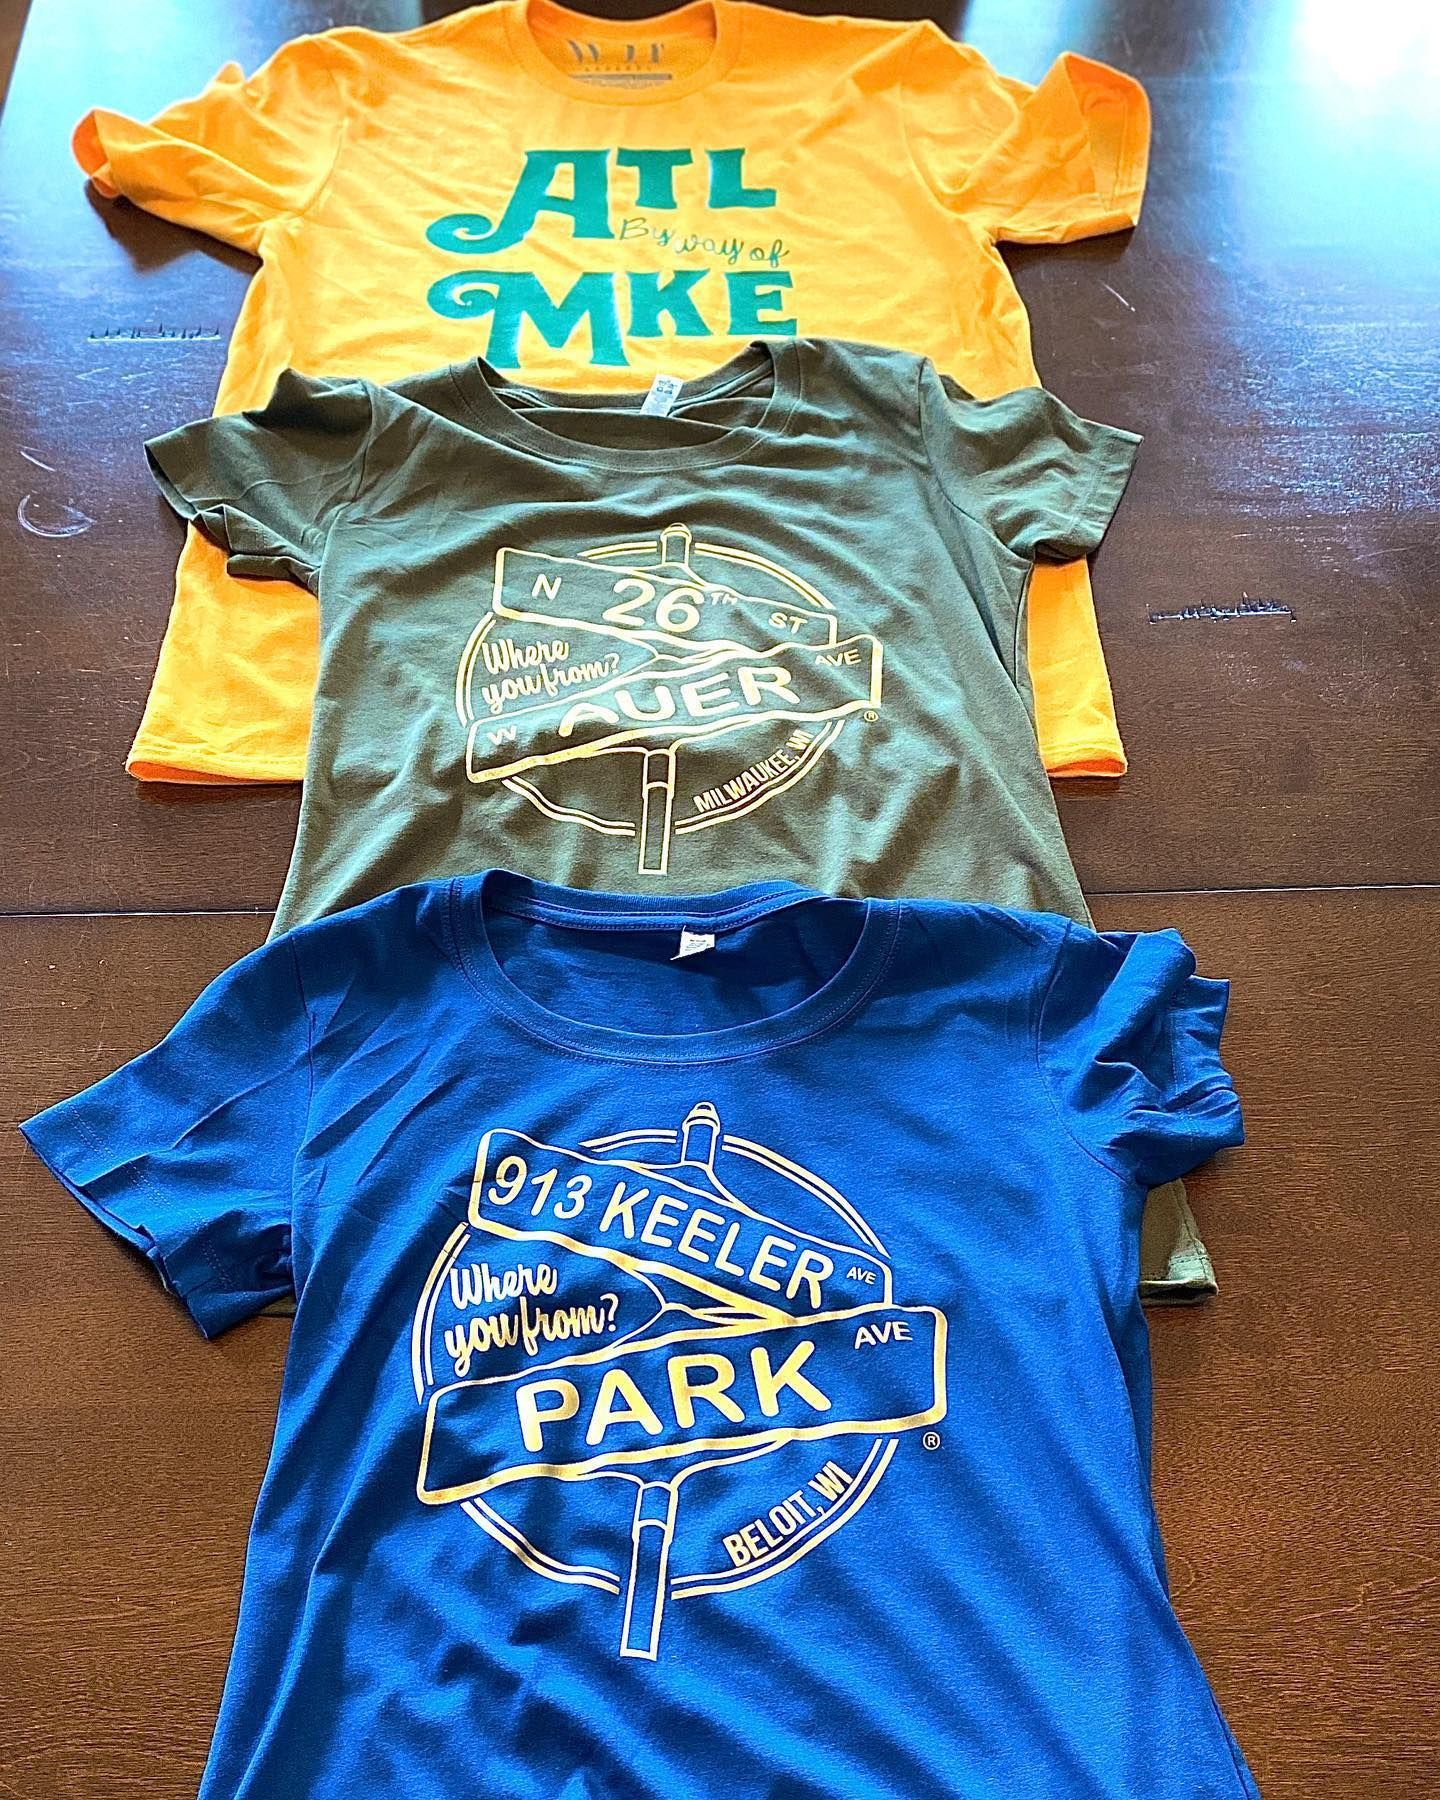 We All Represent Somewhere Where You From Wyfapparel Com Whereyoufrom Milwaukee Beloit W Customise T Shirt Tshirt Designs Support Black Business